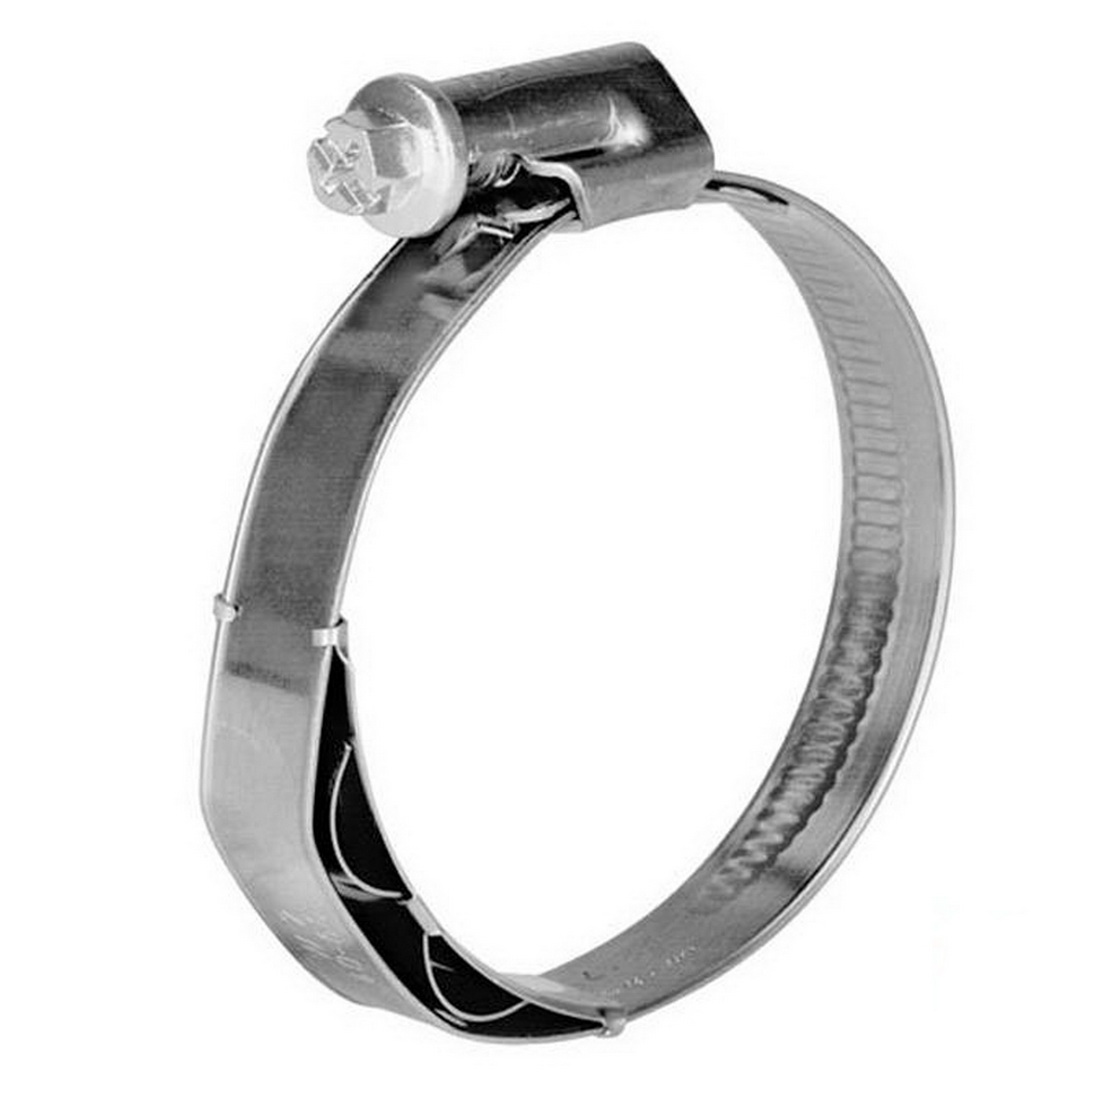 Hose Clamp SS 2 Pack  10-16mm 7.5mm Band